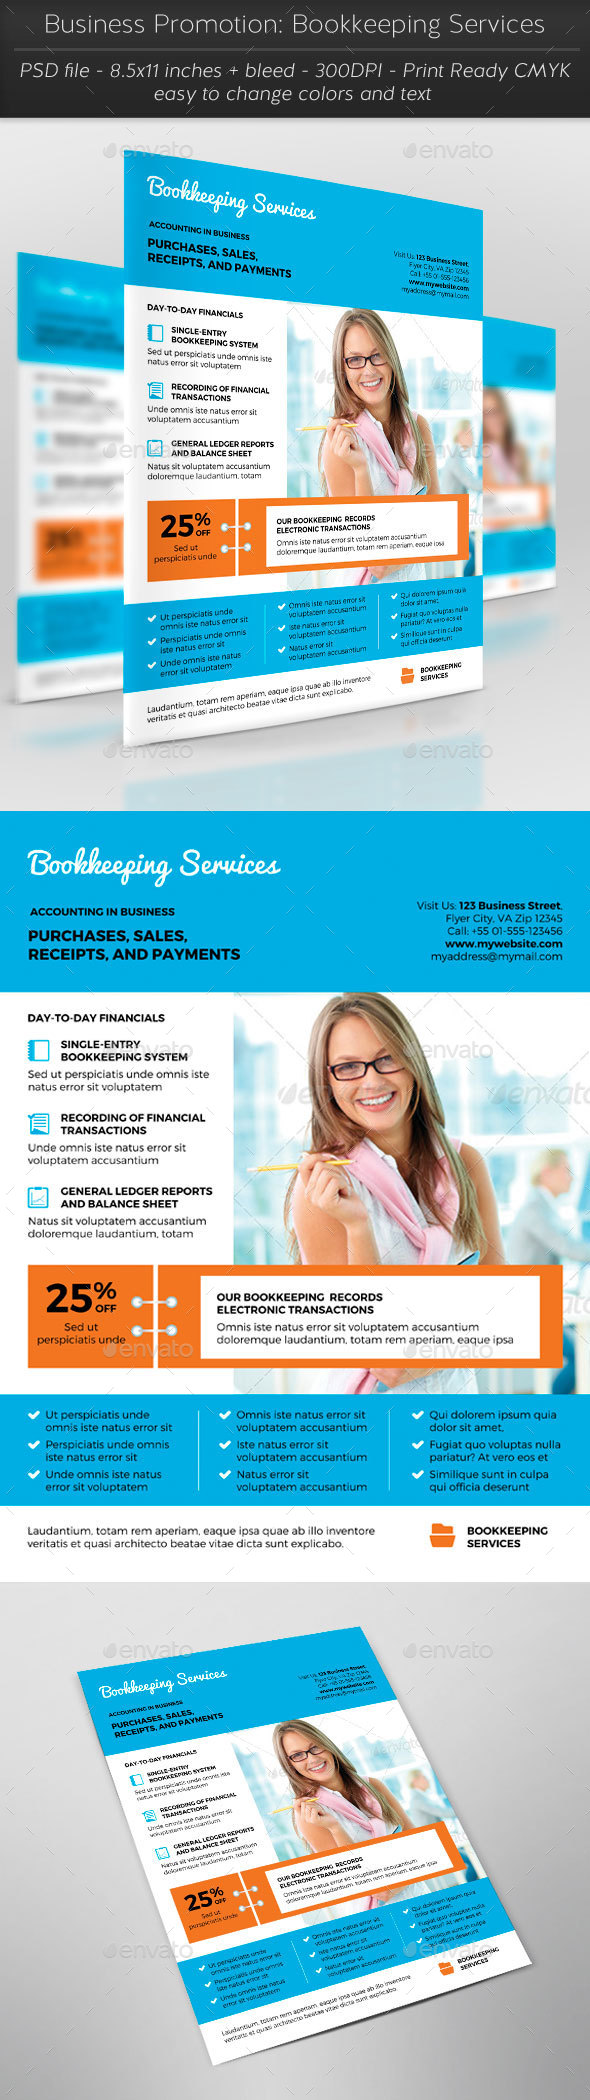 Business Promotion: Bookkeeping Services - Corporate Flyers